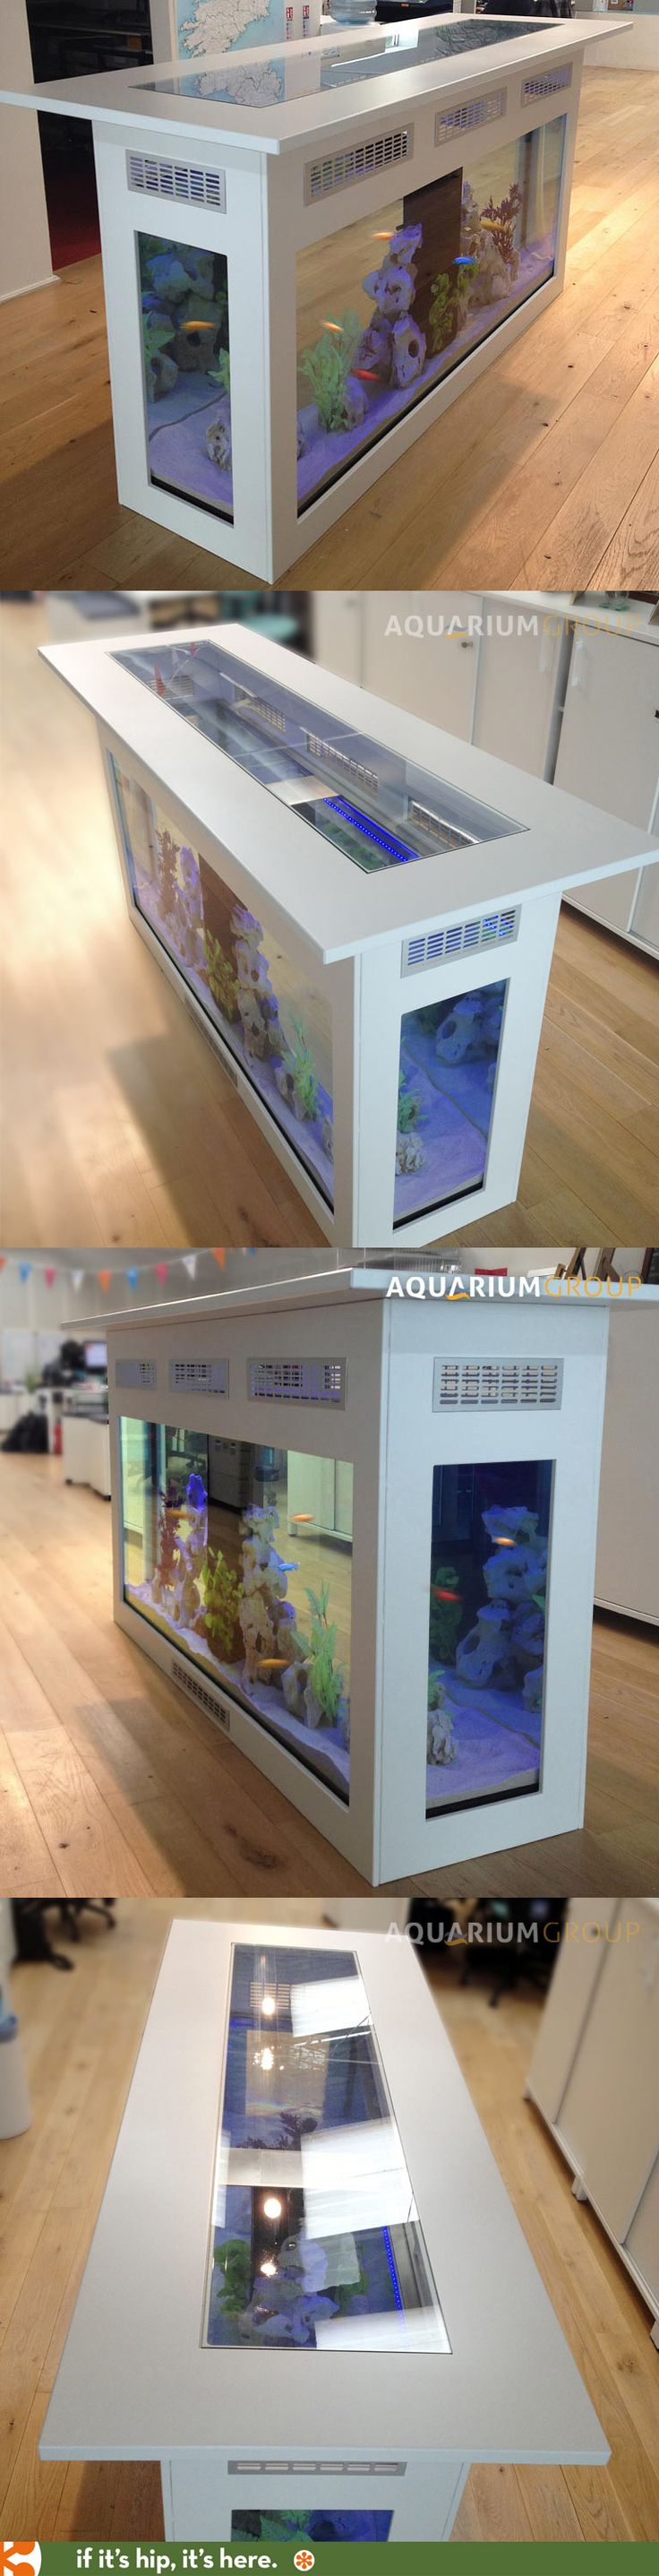 Aquarium Interior Design Ideas https://www.youtube.com/playlist?list=PLl8qTg6_ZvjEyKwVMIArpOdW_zT9ltCdl&action_edit=1